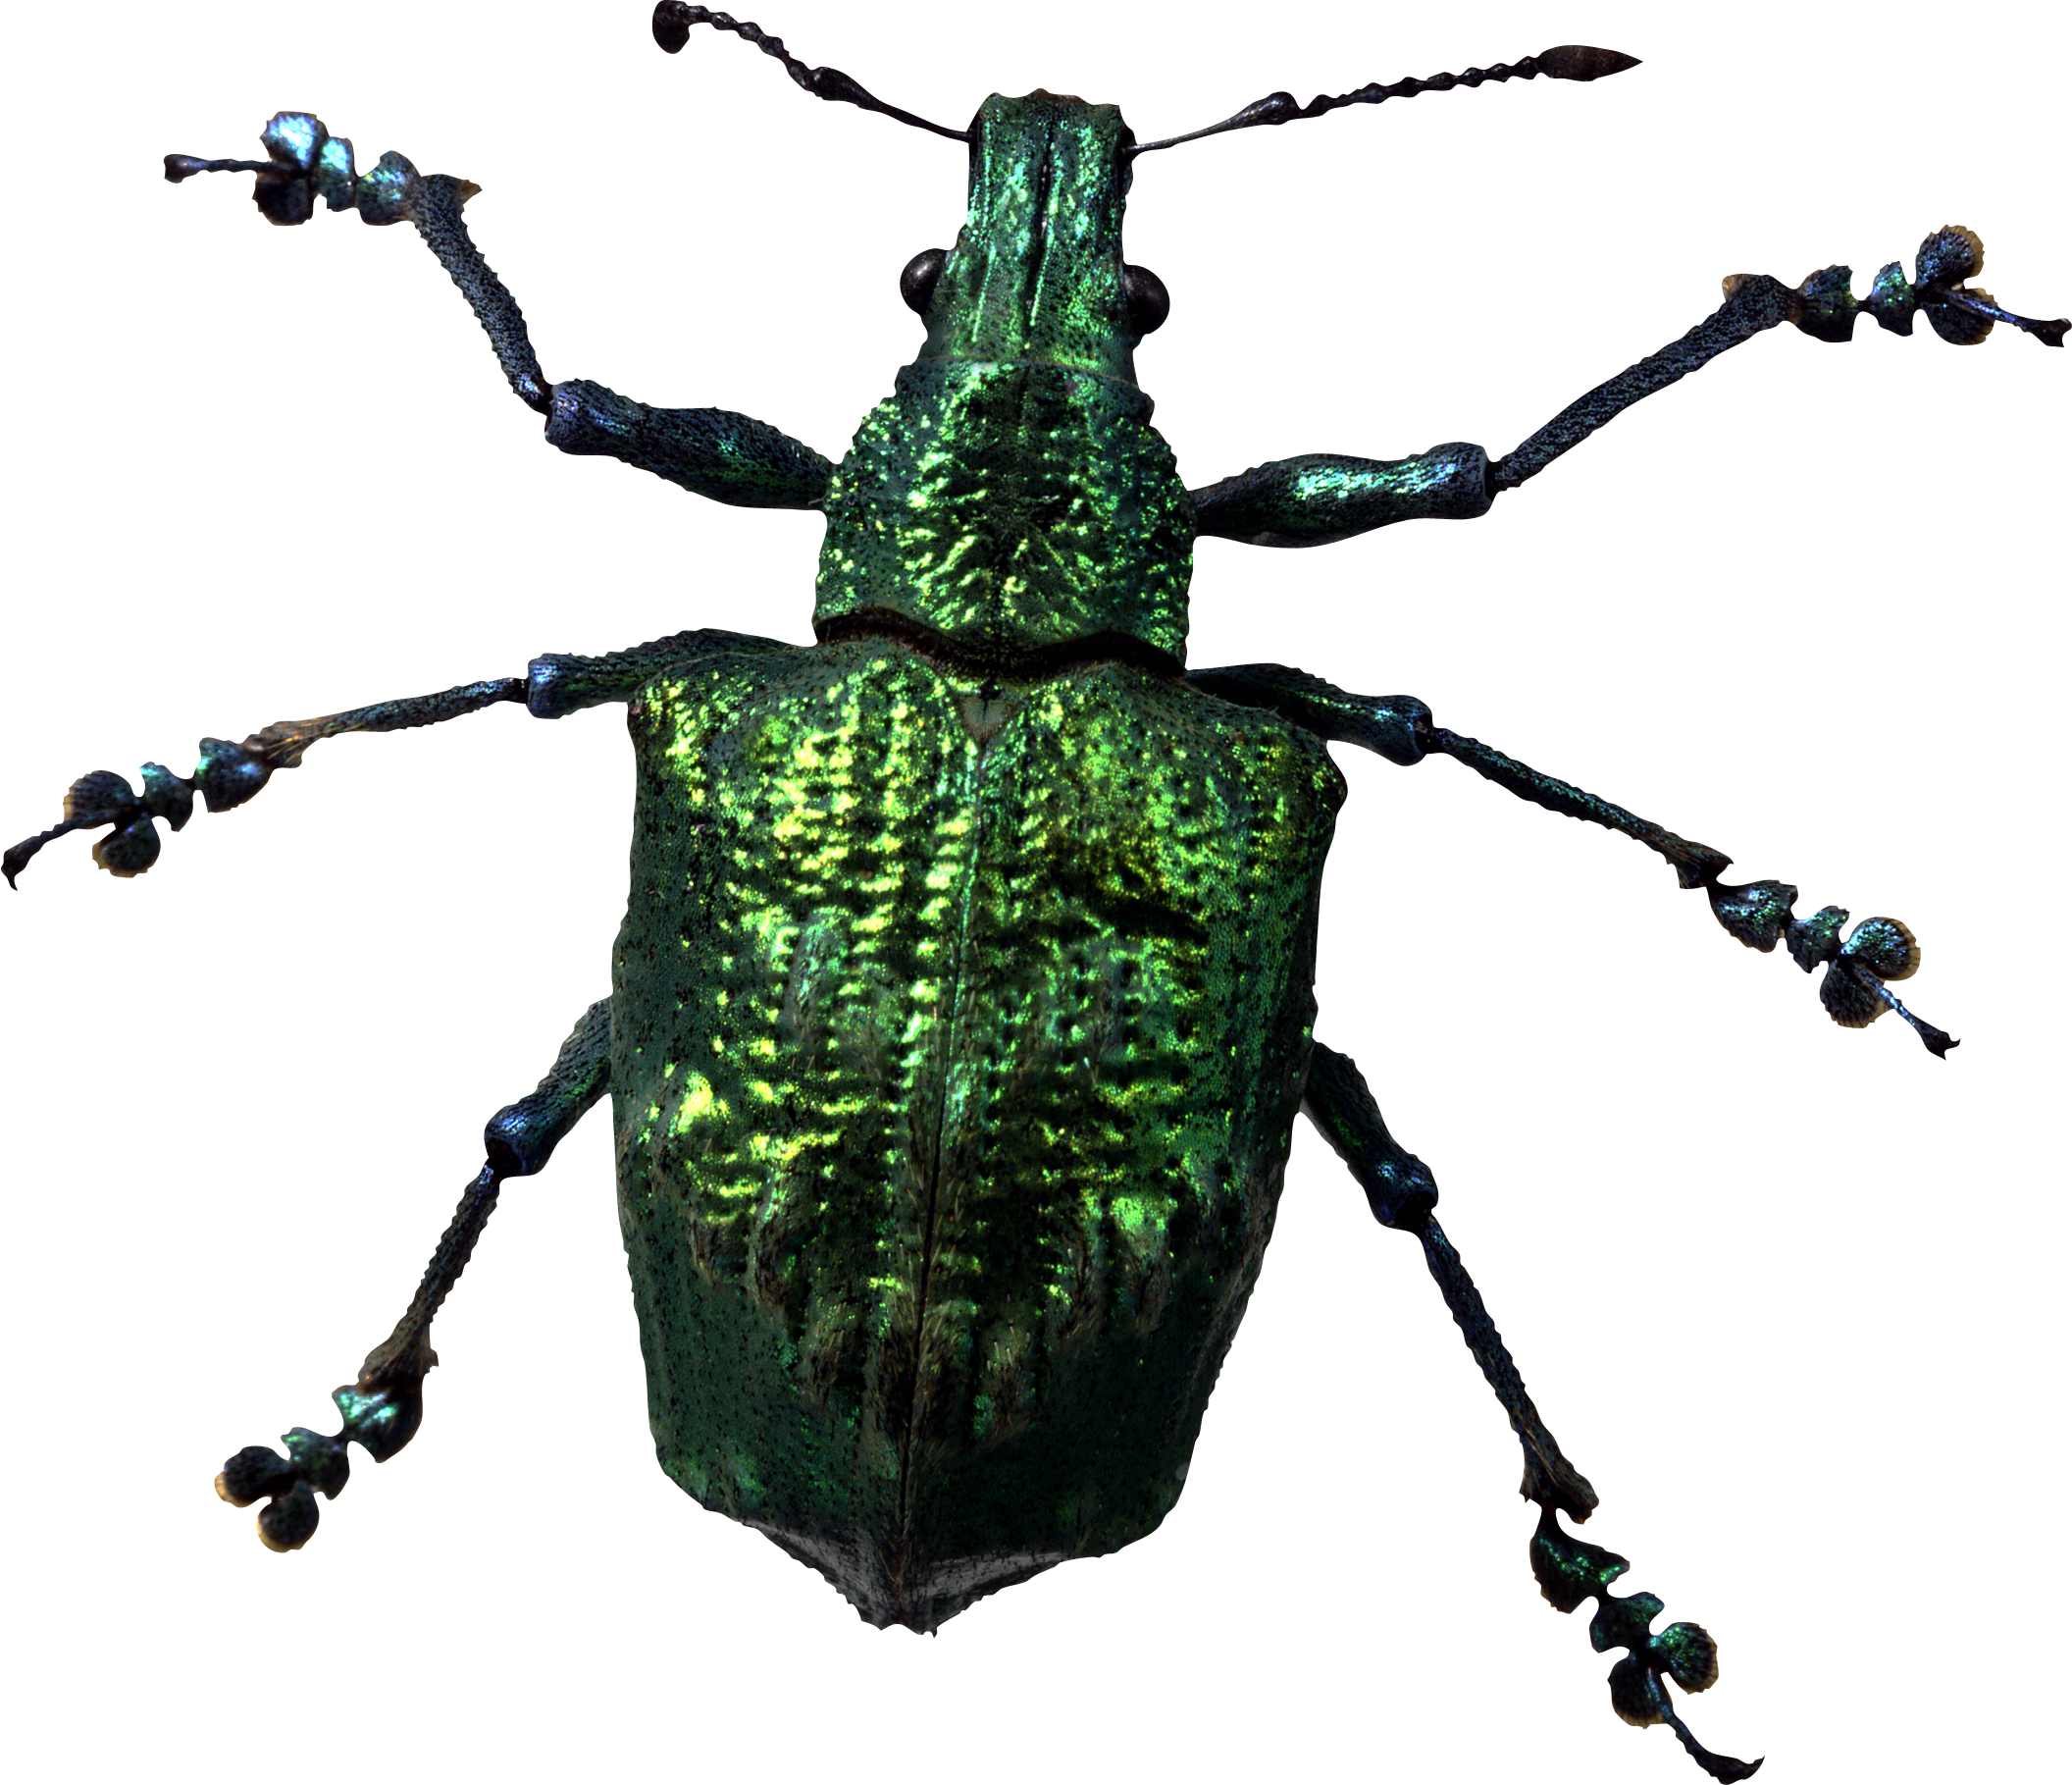 bugs are insects The true bugs have hemielytra, not elytra the forewings of bugs are only hard for part of their length instead of the entire length the upper part is thick and leathery and the lower part is membranous, about the same texture as the hind wings underneath.